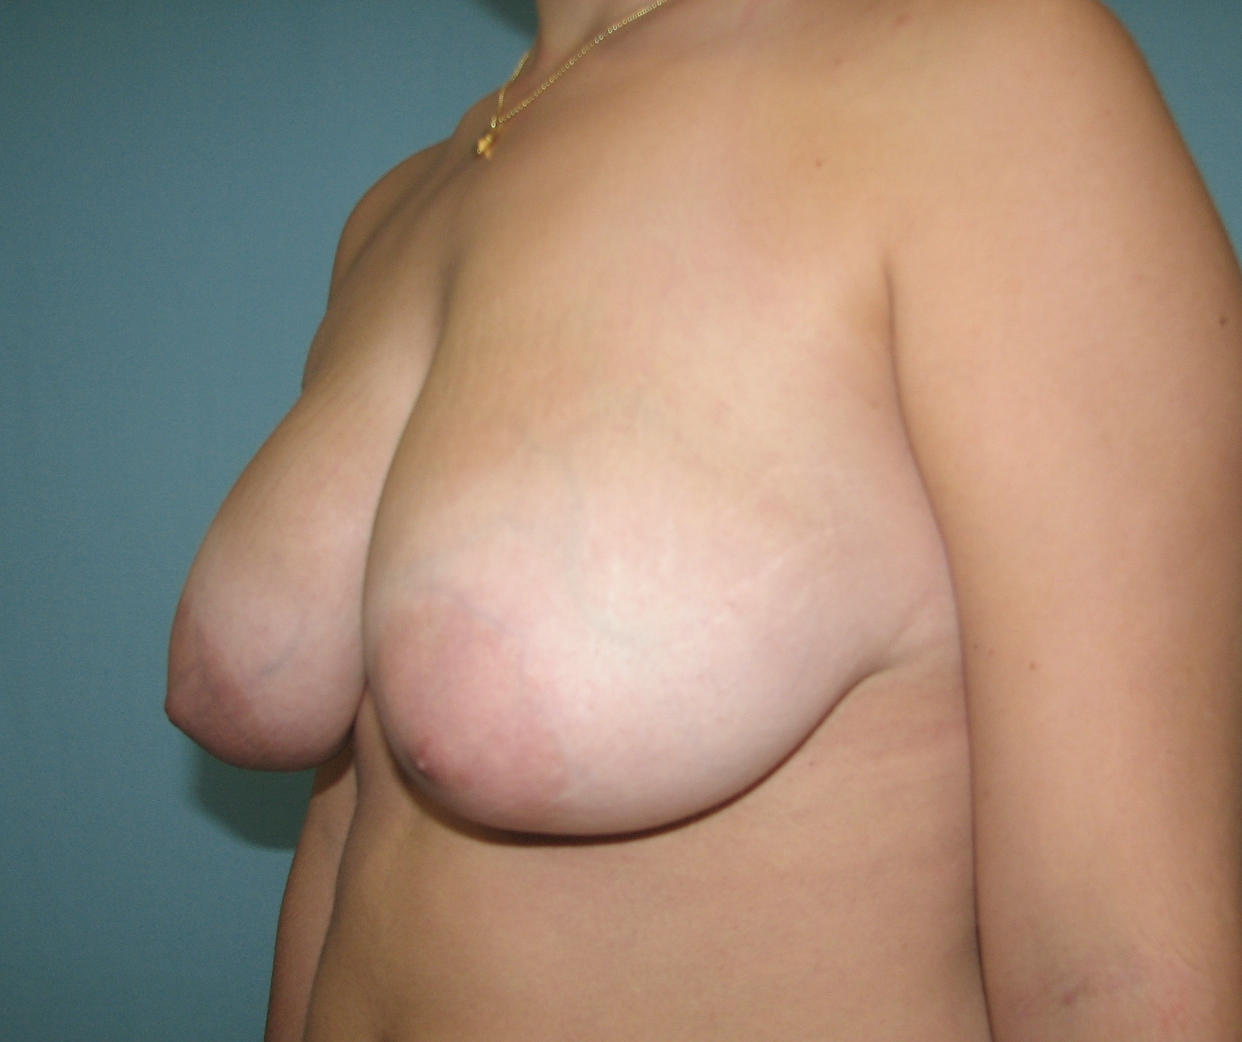 Breast reduction in miami